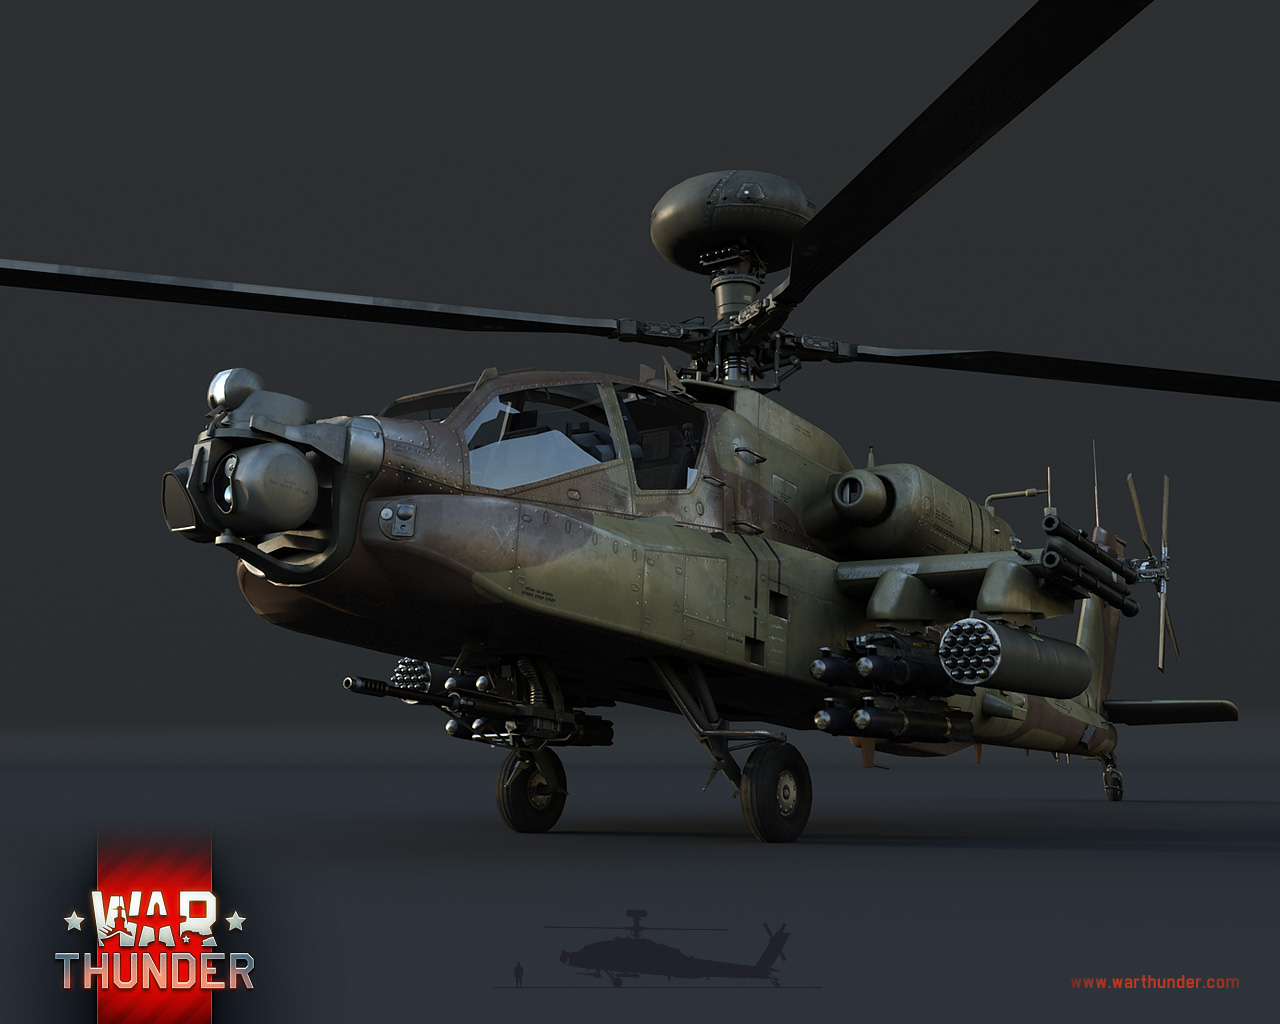 best combat helicopter simulator with 4614 Gm 64 Rotary Wing Chieftain En on 1178342332 in addition Helicopter Simulator Pc Games List furthermore 4614 Gm 64 Rotary Wing Chieftain En further A Flight Battle Ch ions Pro A Helicopter Chaos Simulator likewise Helicopter Simulator.